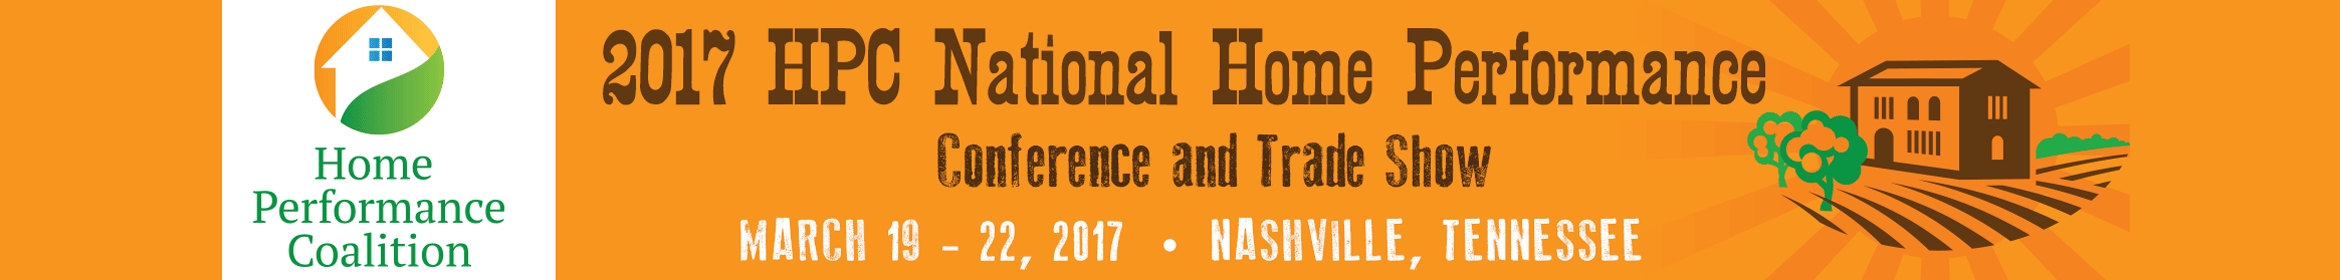 2017 HPC National Home Performance Conference  Main banner